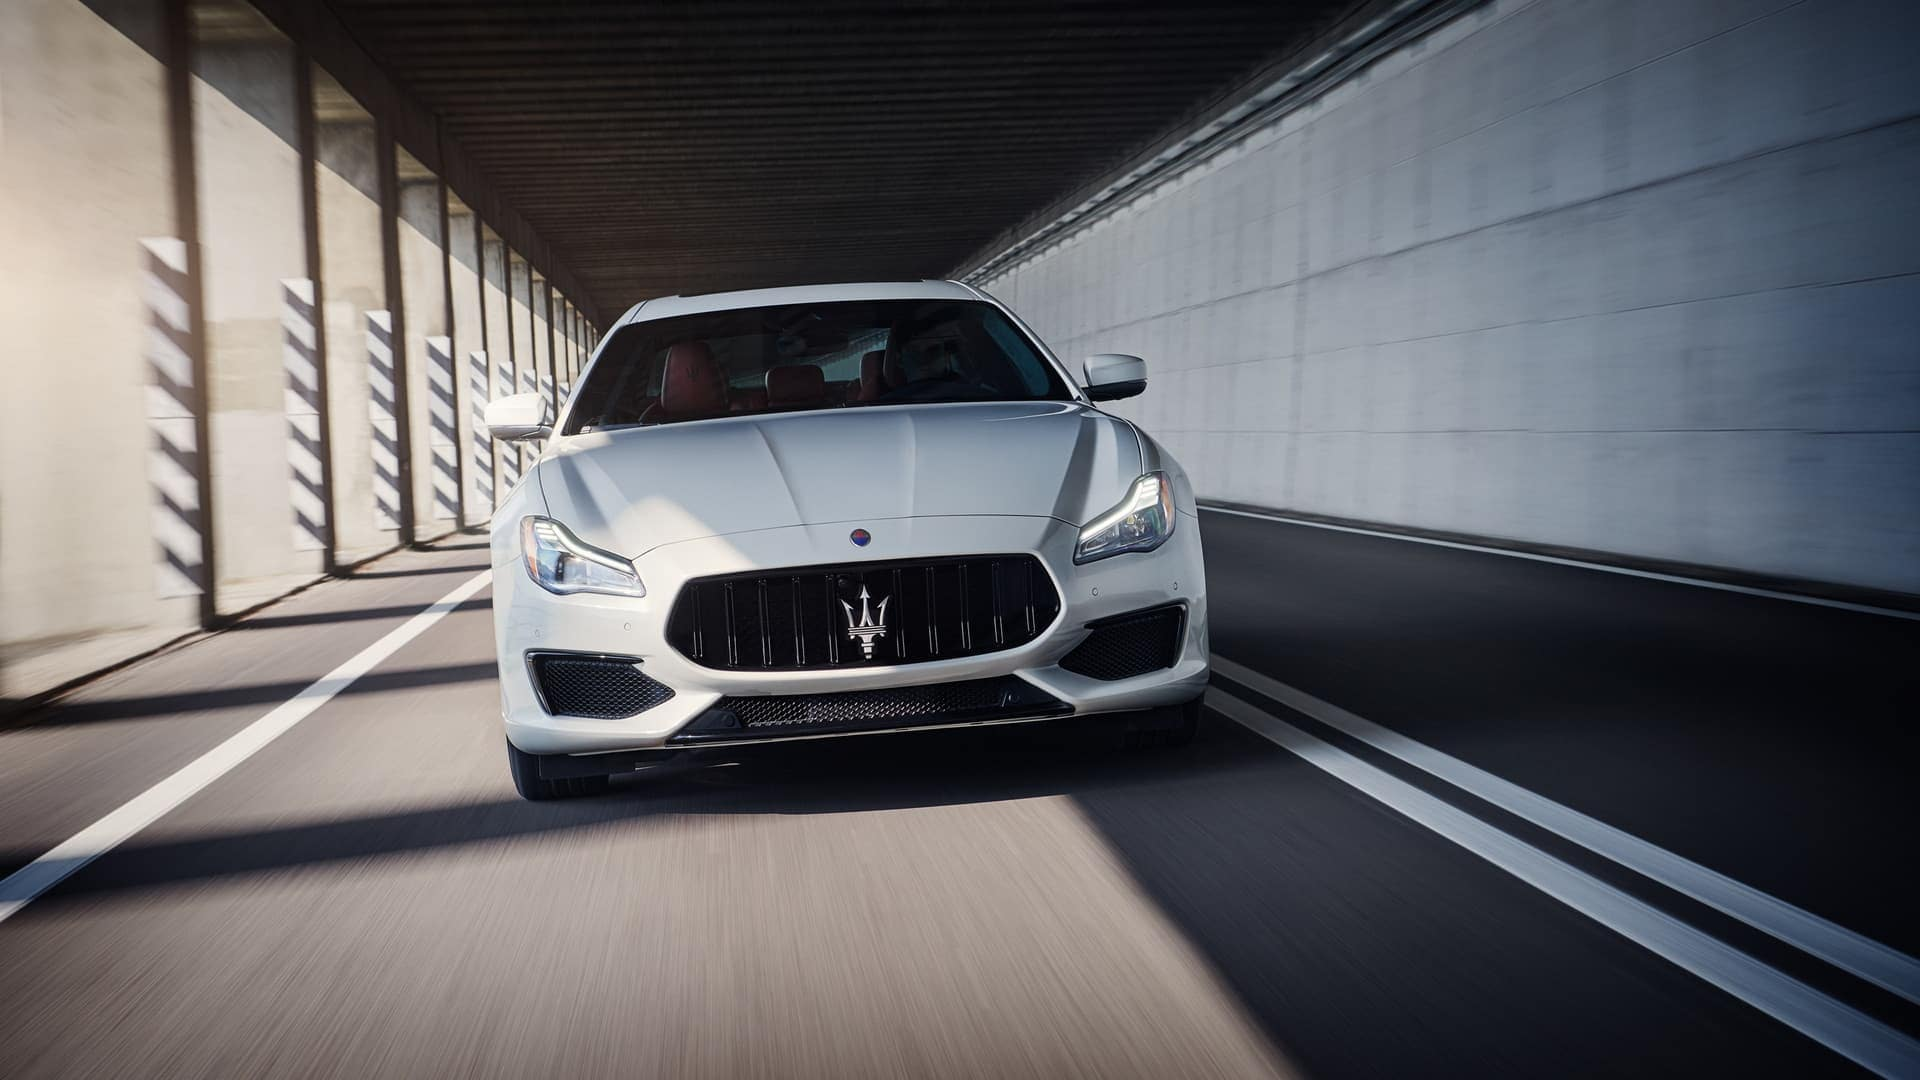 2019 Maserati Quattroporte driving down road